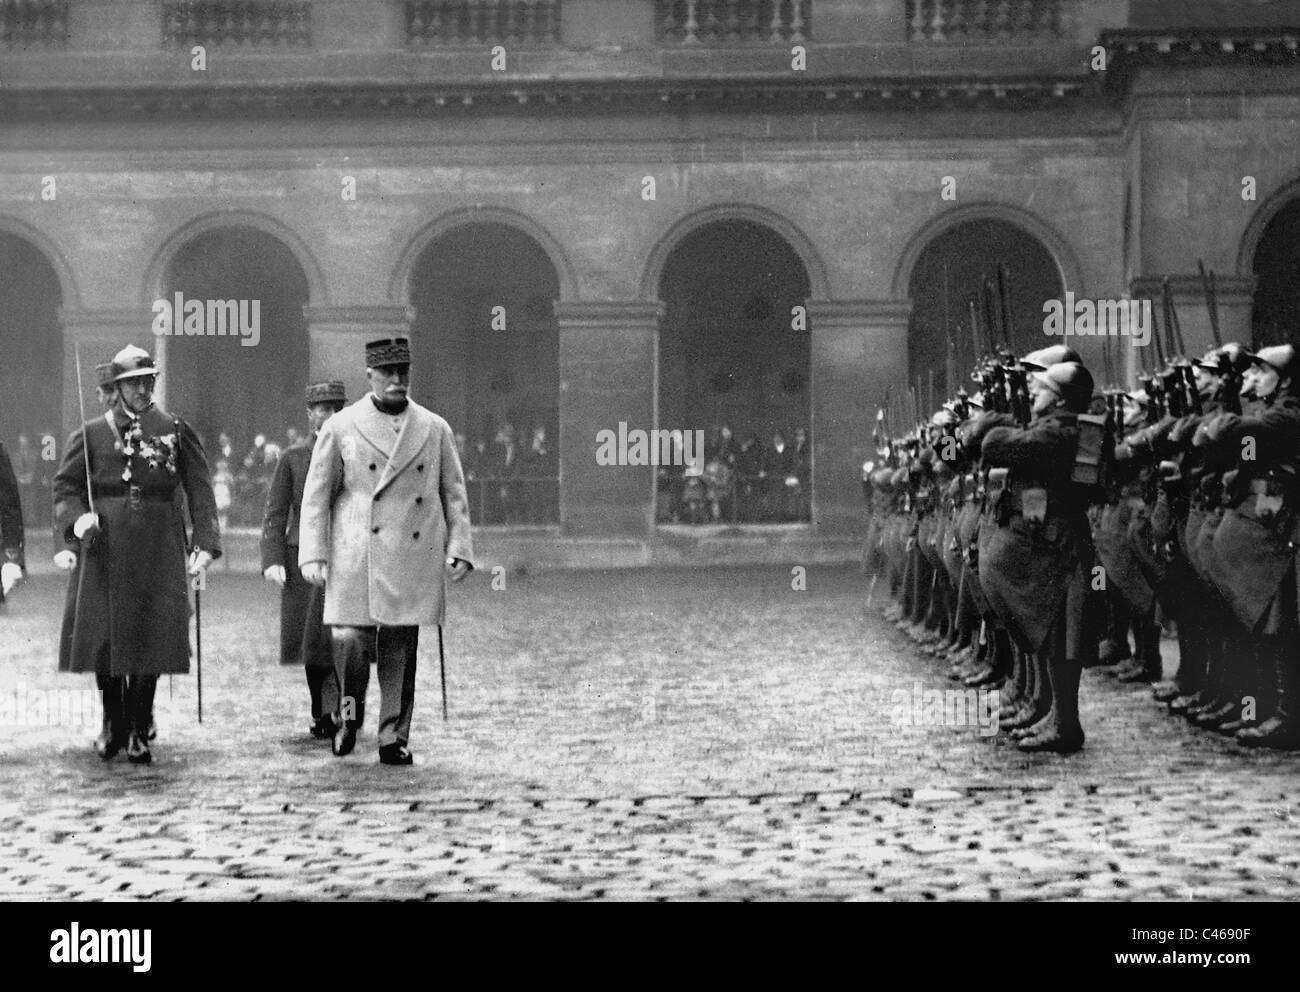 Henri Philippe Petain steps off a guard of honor, 1936 - Stock Image